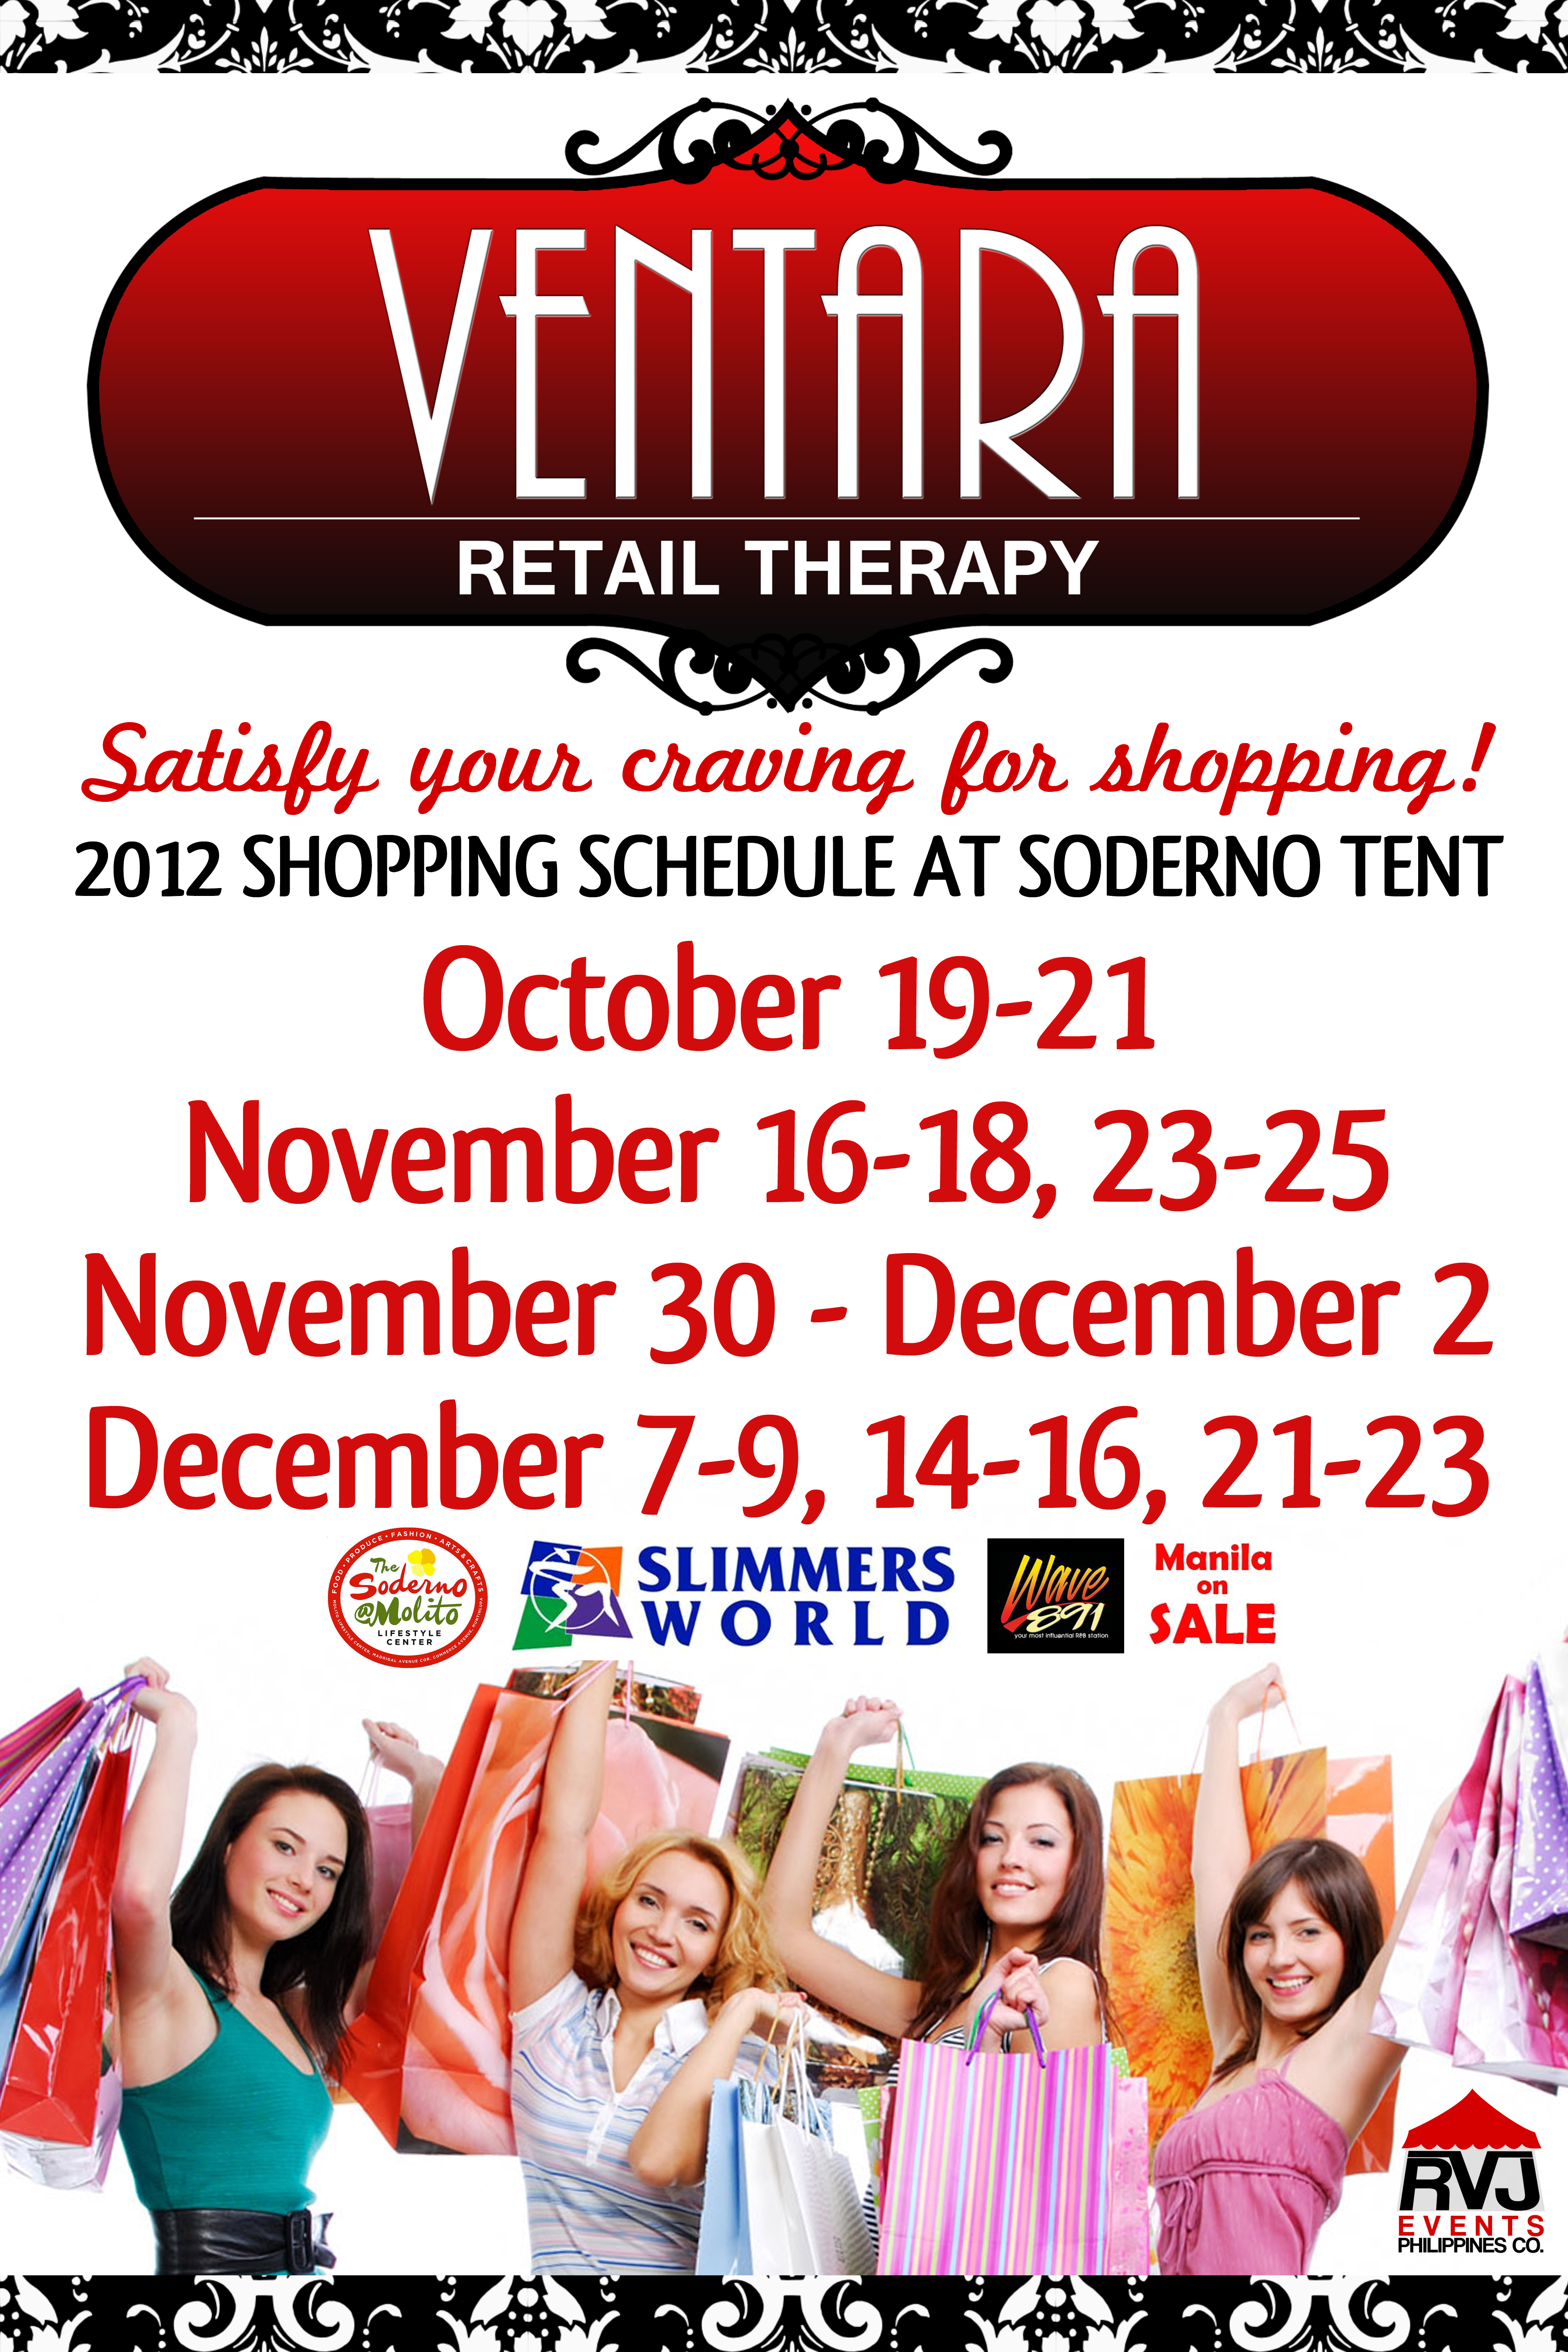 Ventara Retail Therapy @ Soderno Alabang October - December 2012